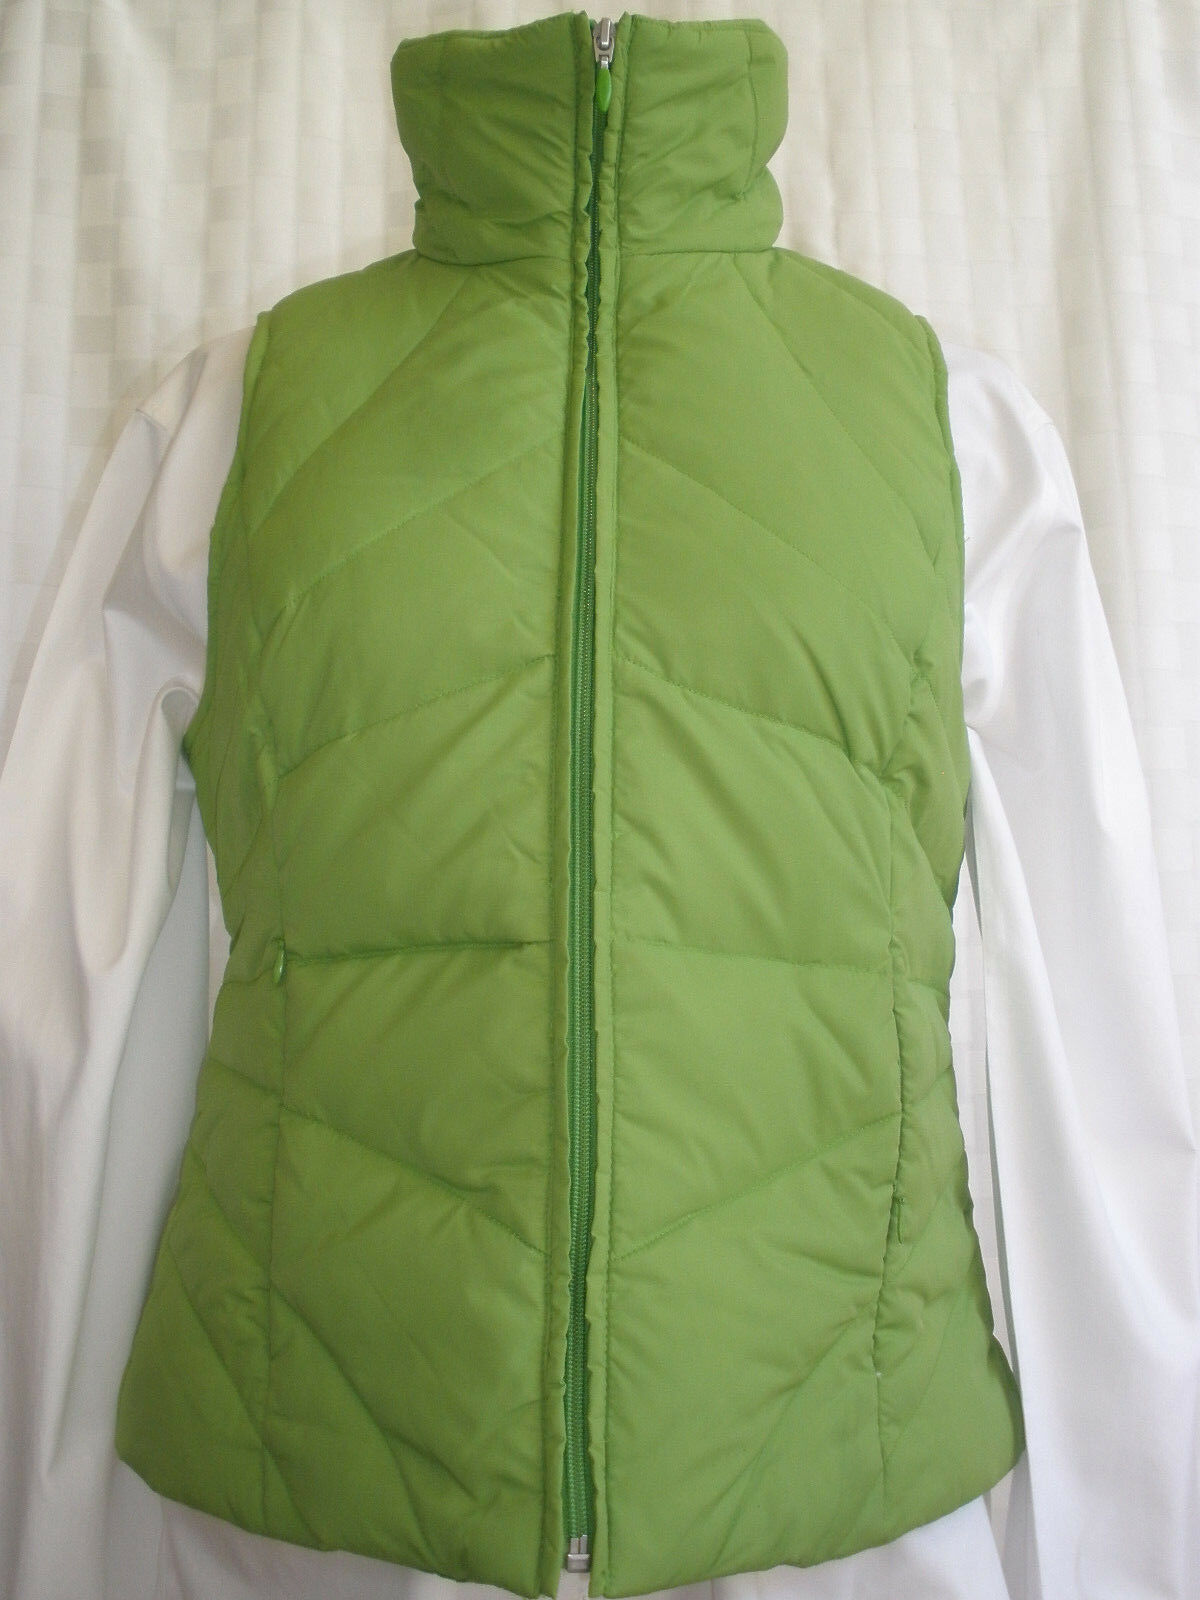 KENNETH COLE REACTION DOWN VEST WOMEN SIZE S VERY NICE & WARM RARE NEW